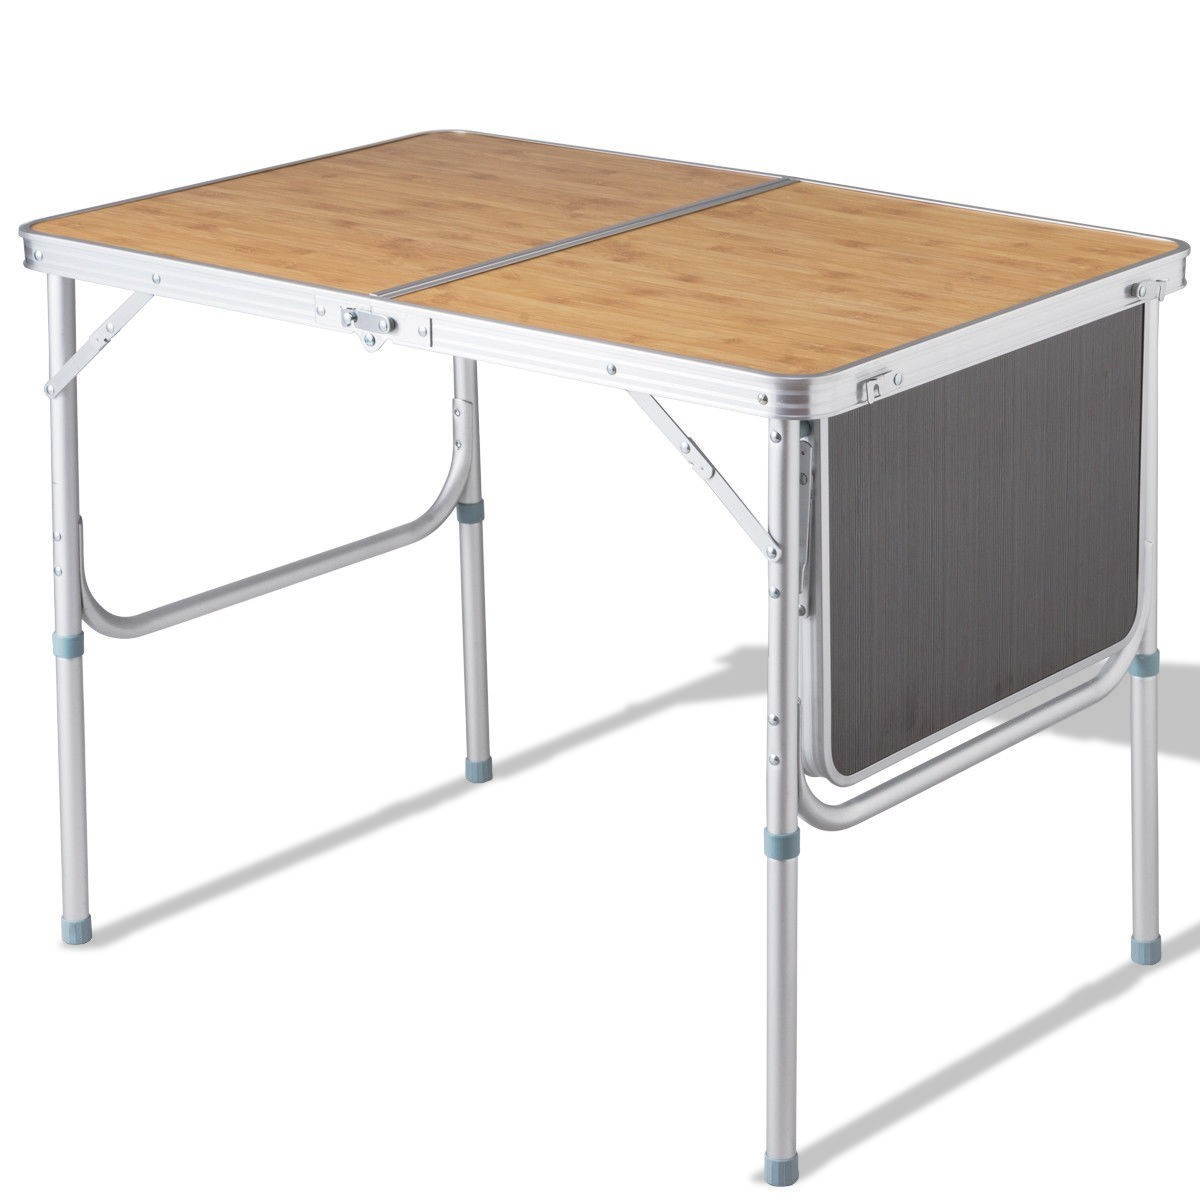 Click here to buy Aluminum Folding Picnic Camping Table with MDF Table Top.